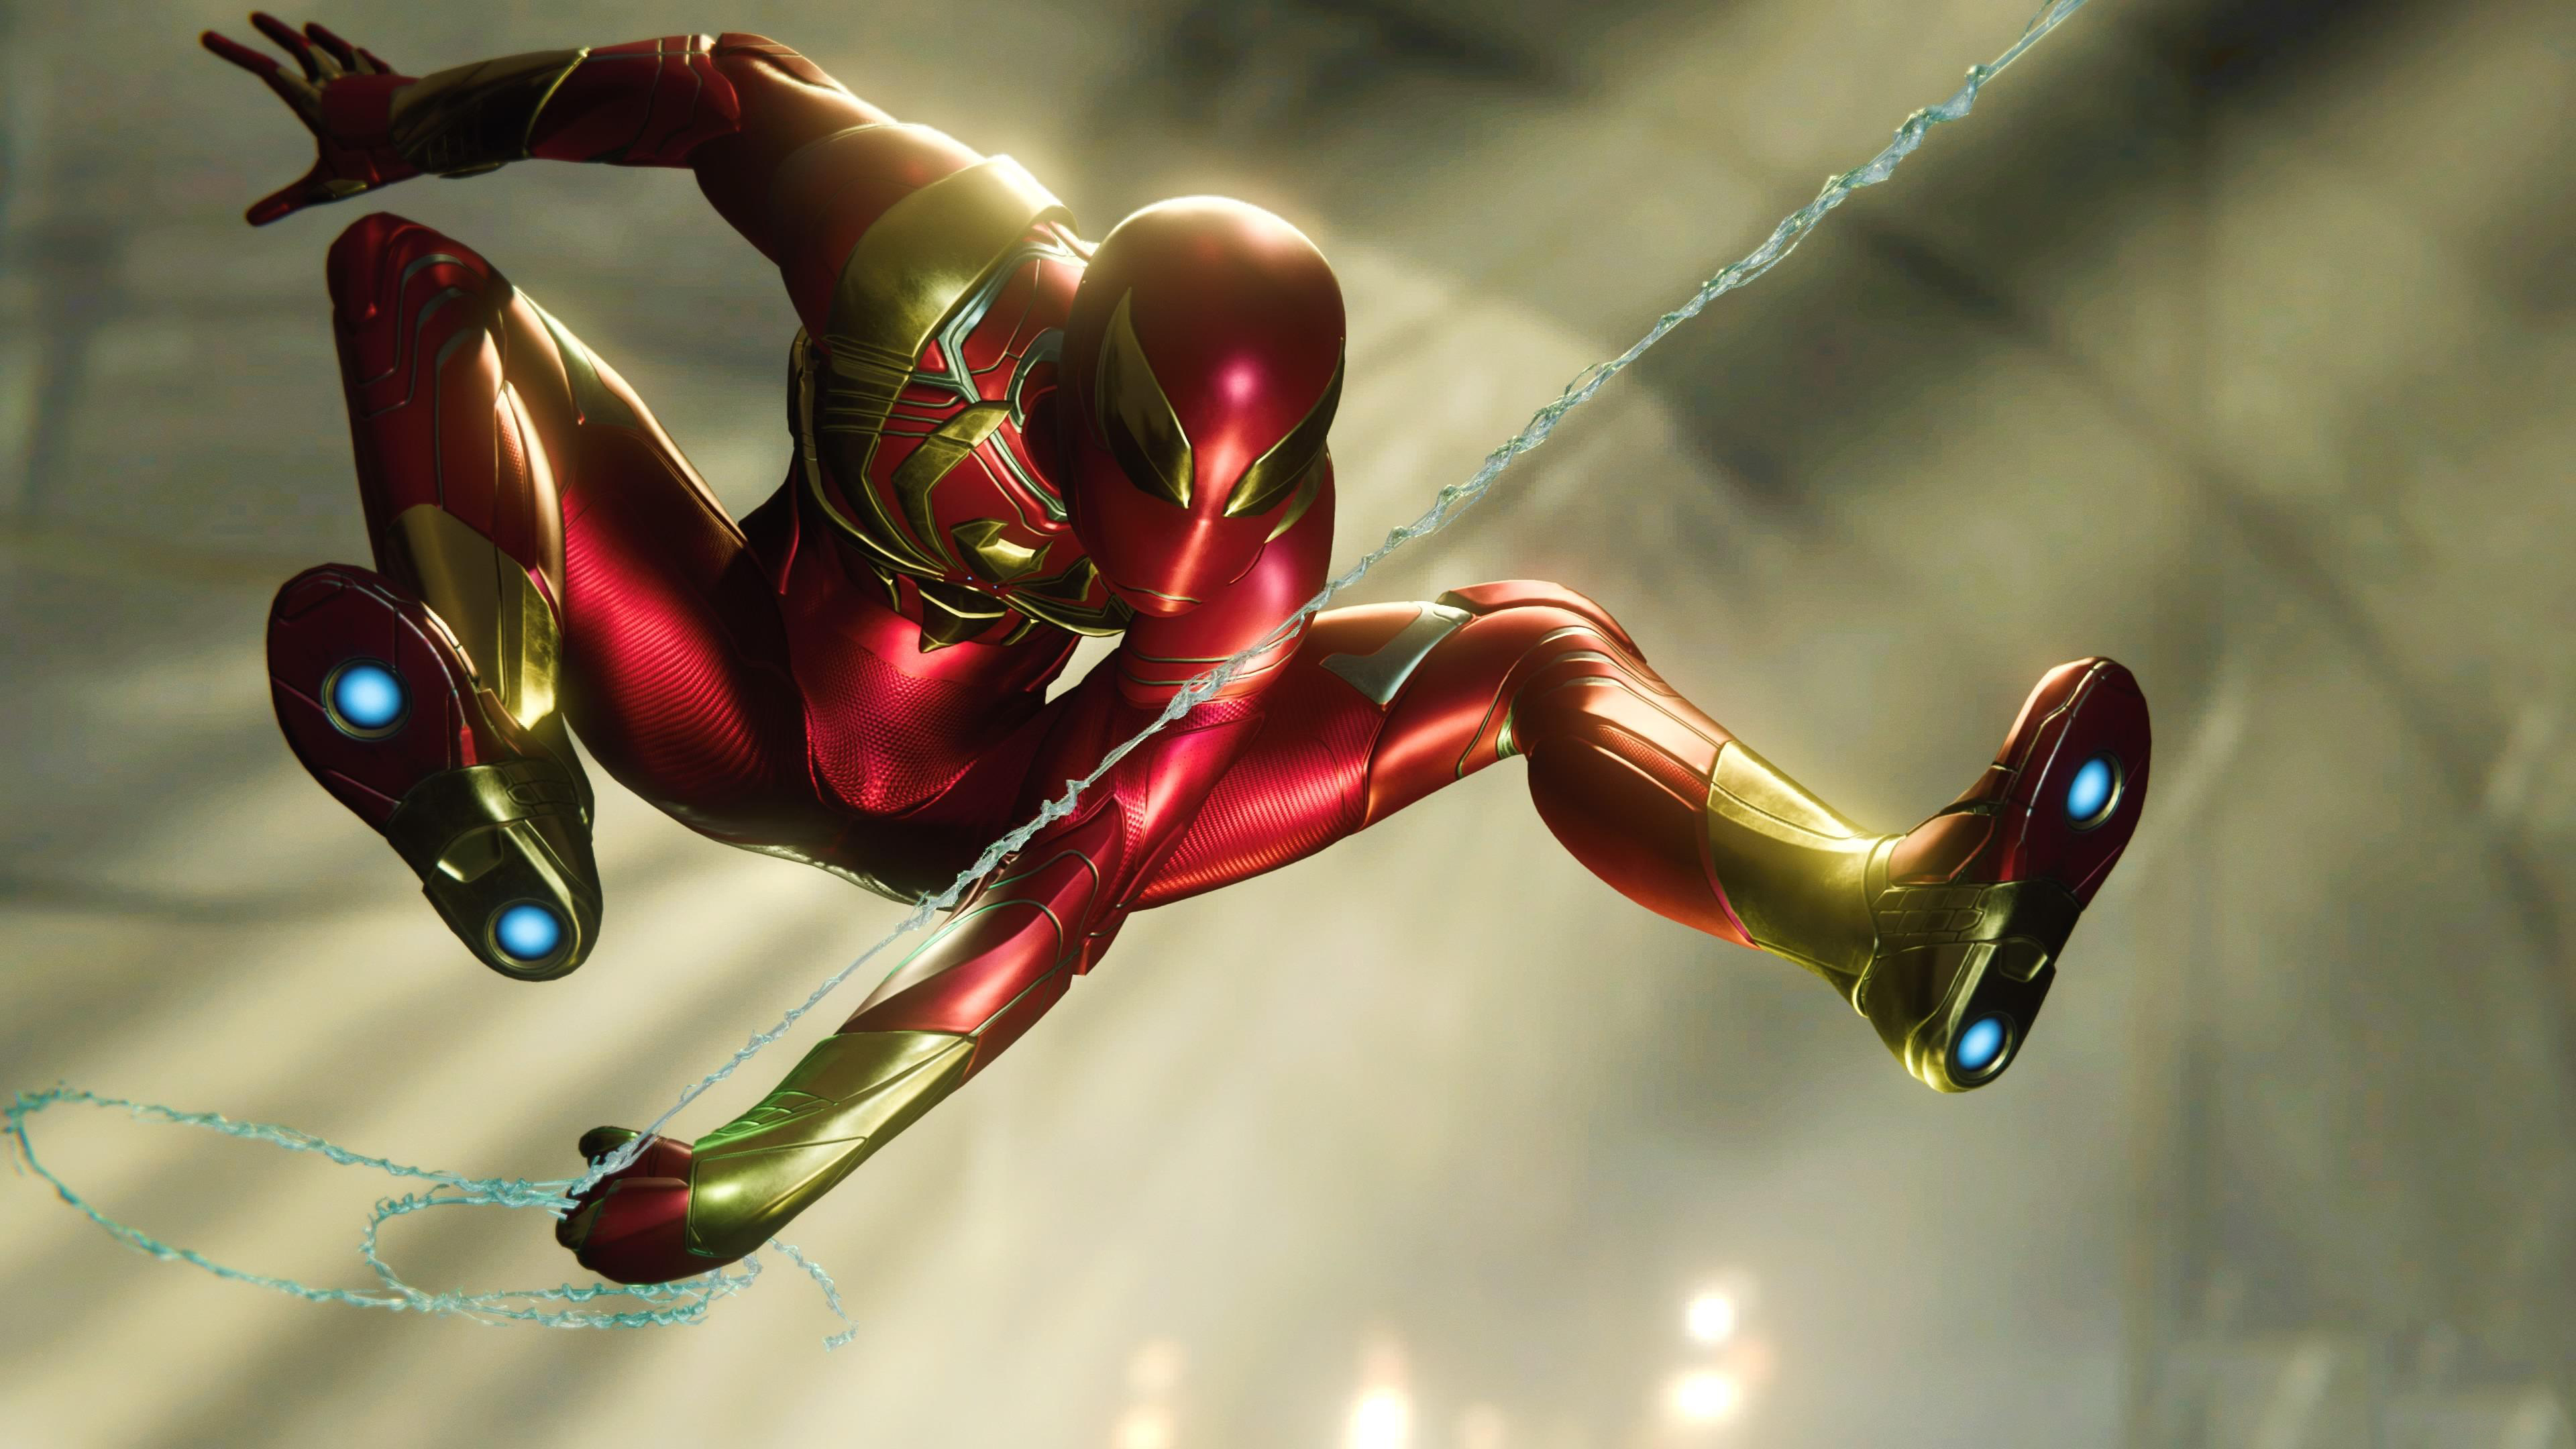 iron spider ps4 1558221021 - Iron Spider Ps4 - superheroes wallpapers, spiderman ps4 wallpapers, hd-wallpapers, games wallpapers, digital art wallpapers, artwork wallpapers, 4k-wallpapers